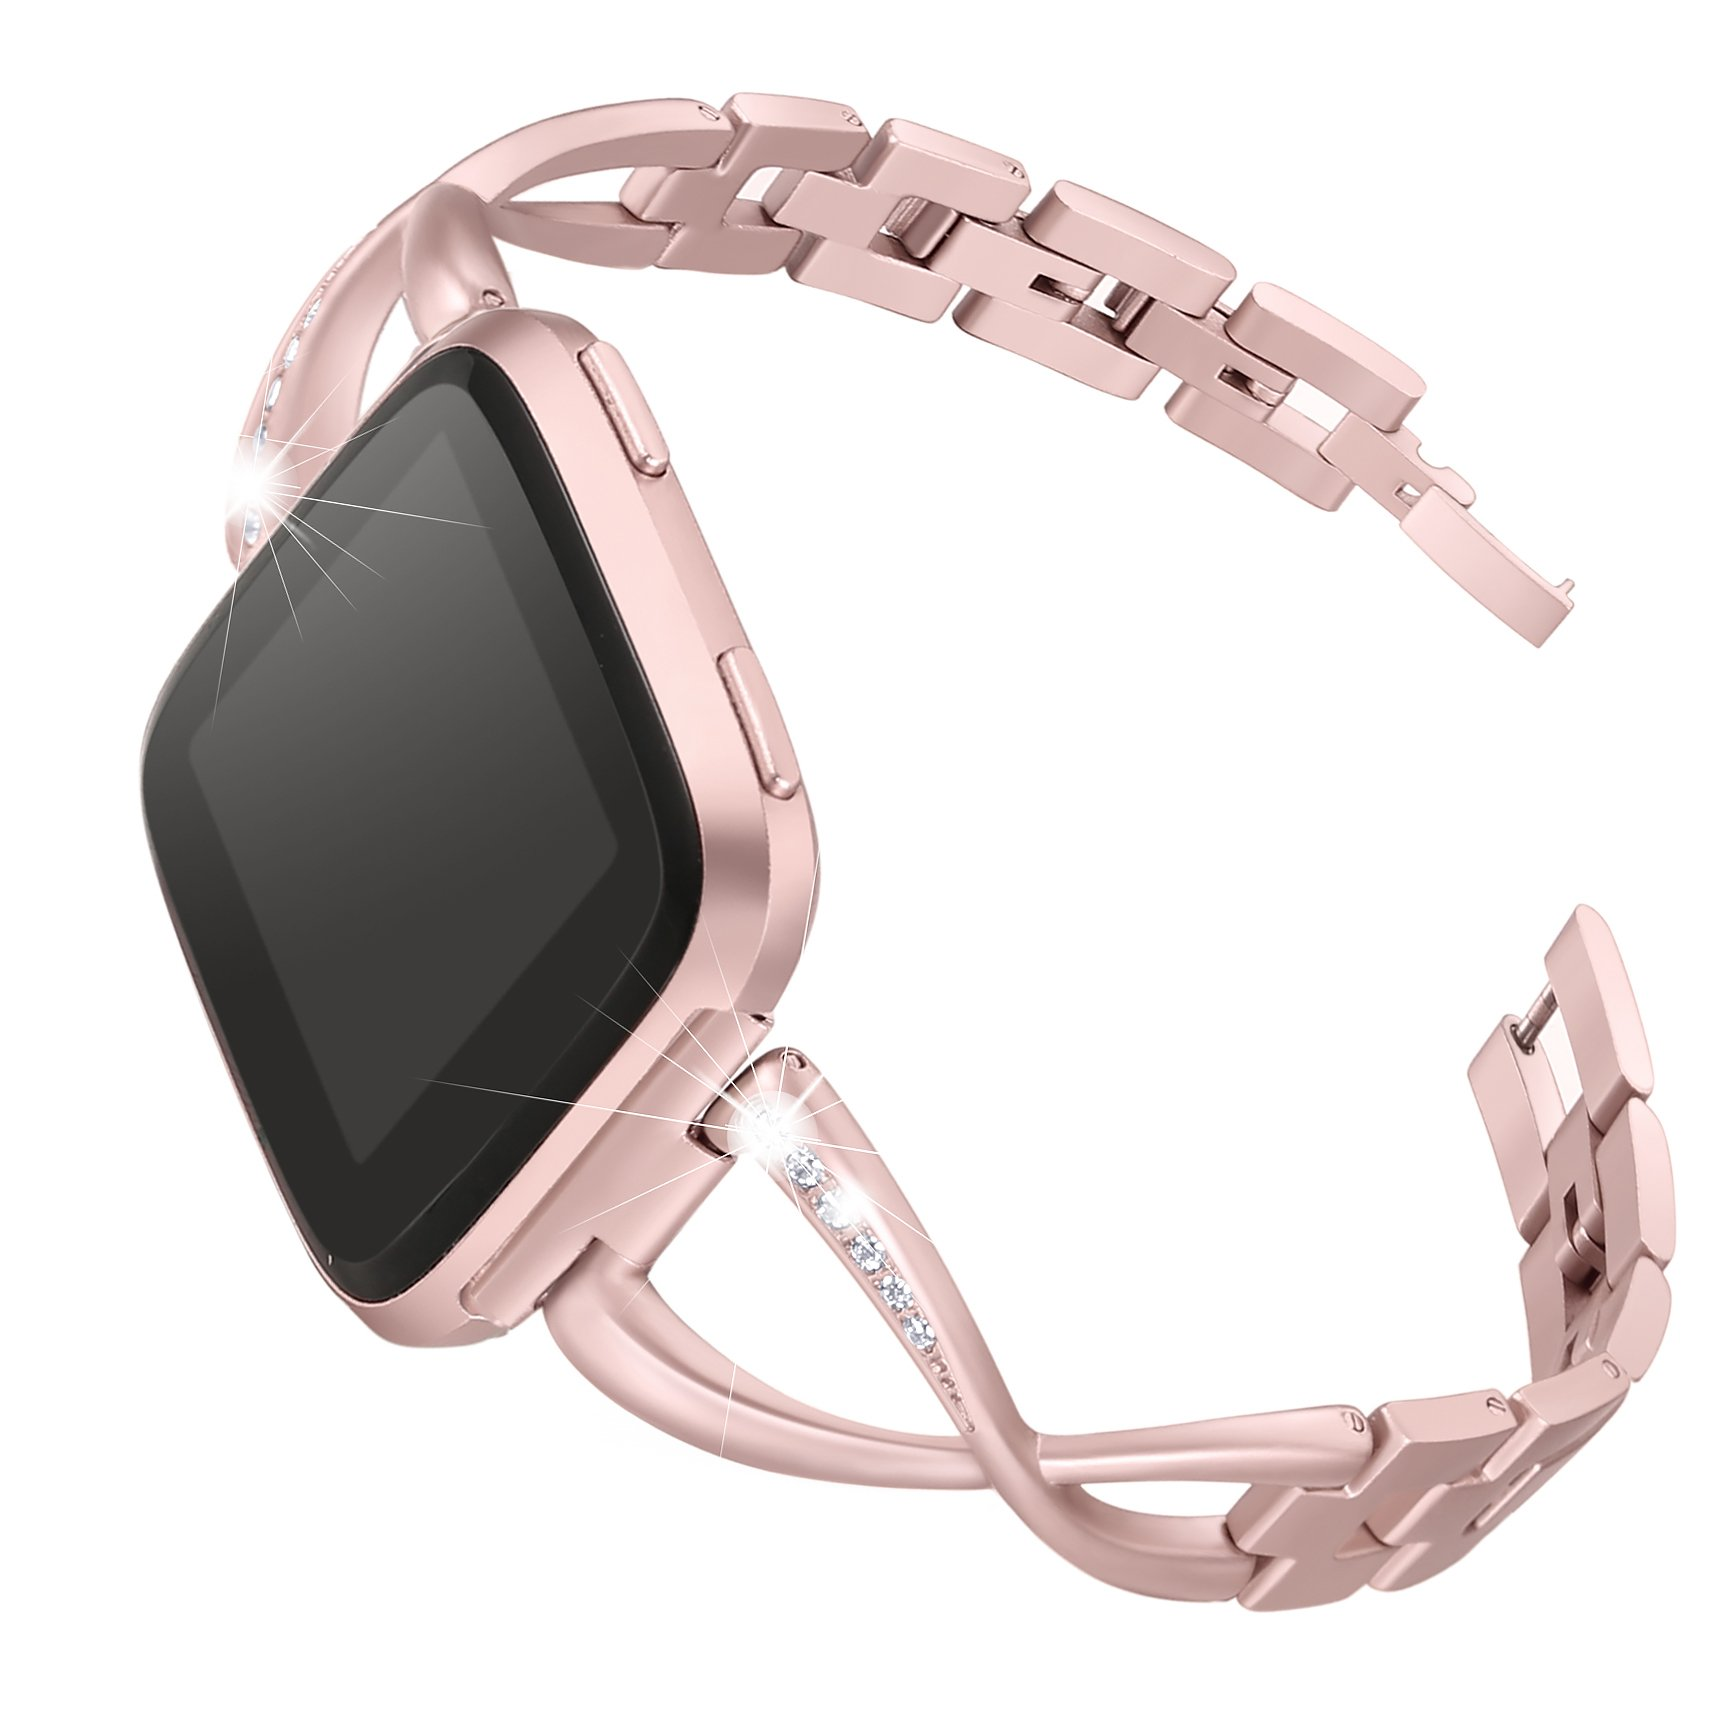 bayite For Fitbit Versa Bands for Women, Rose Gold Stainless Steel Bling Replacement Band Accessories Bracelet with Rhinestones Diamond X-Link for Fitbit Versa Watch Band, 5.3''-7.6''